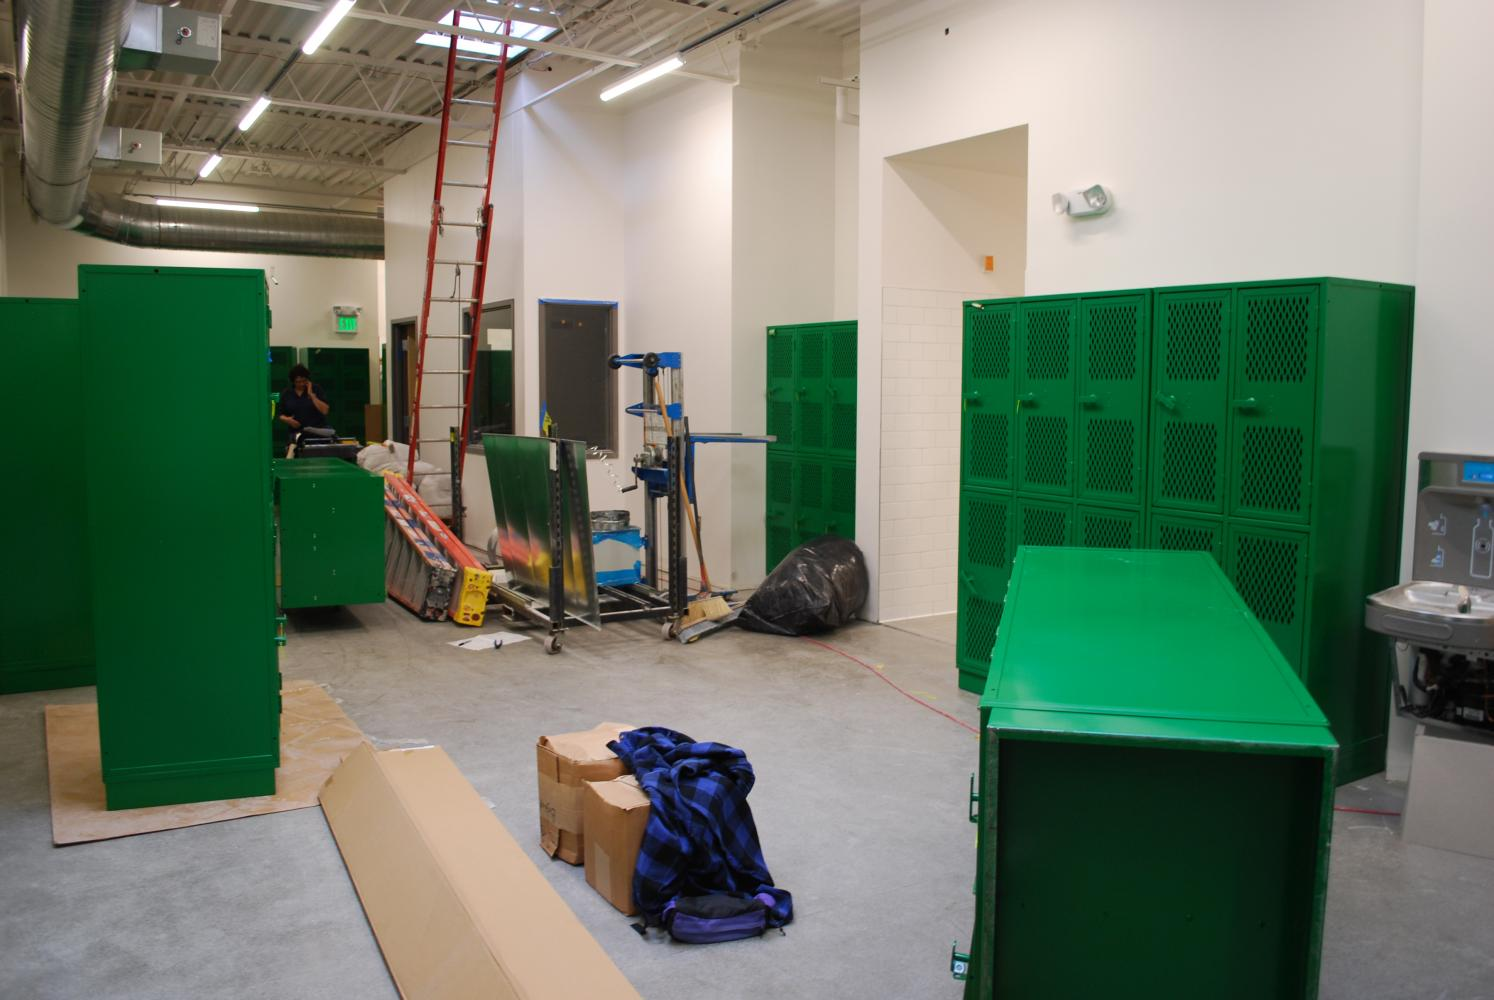 Saturday crews work to stay on target for the October 11th deadline.  This crew looks like it is playing Tetris, getting all of the locker to fit in the girl's locker room.